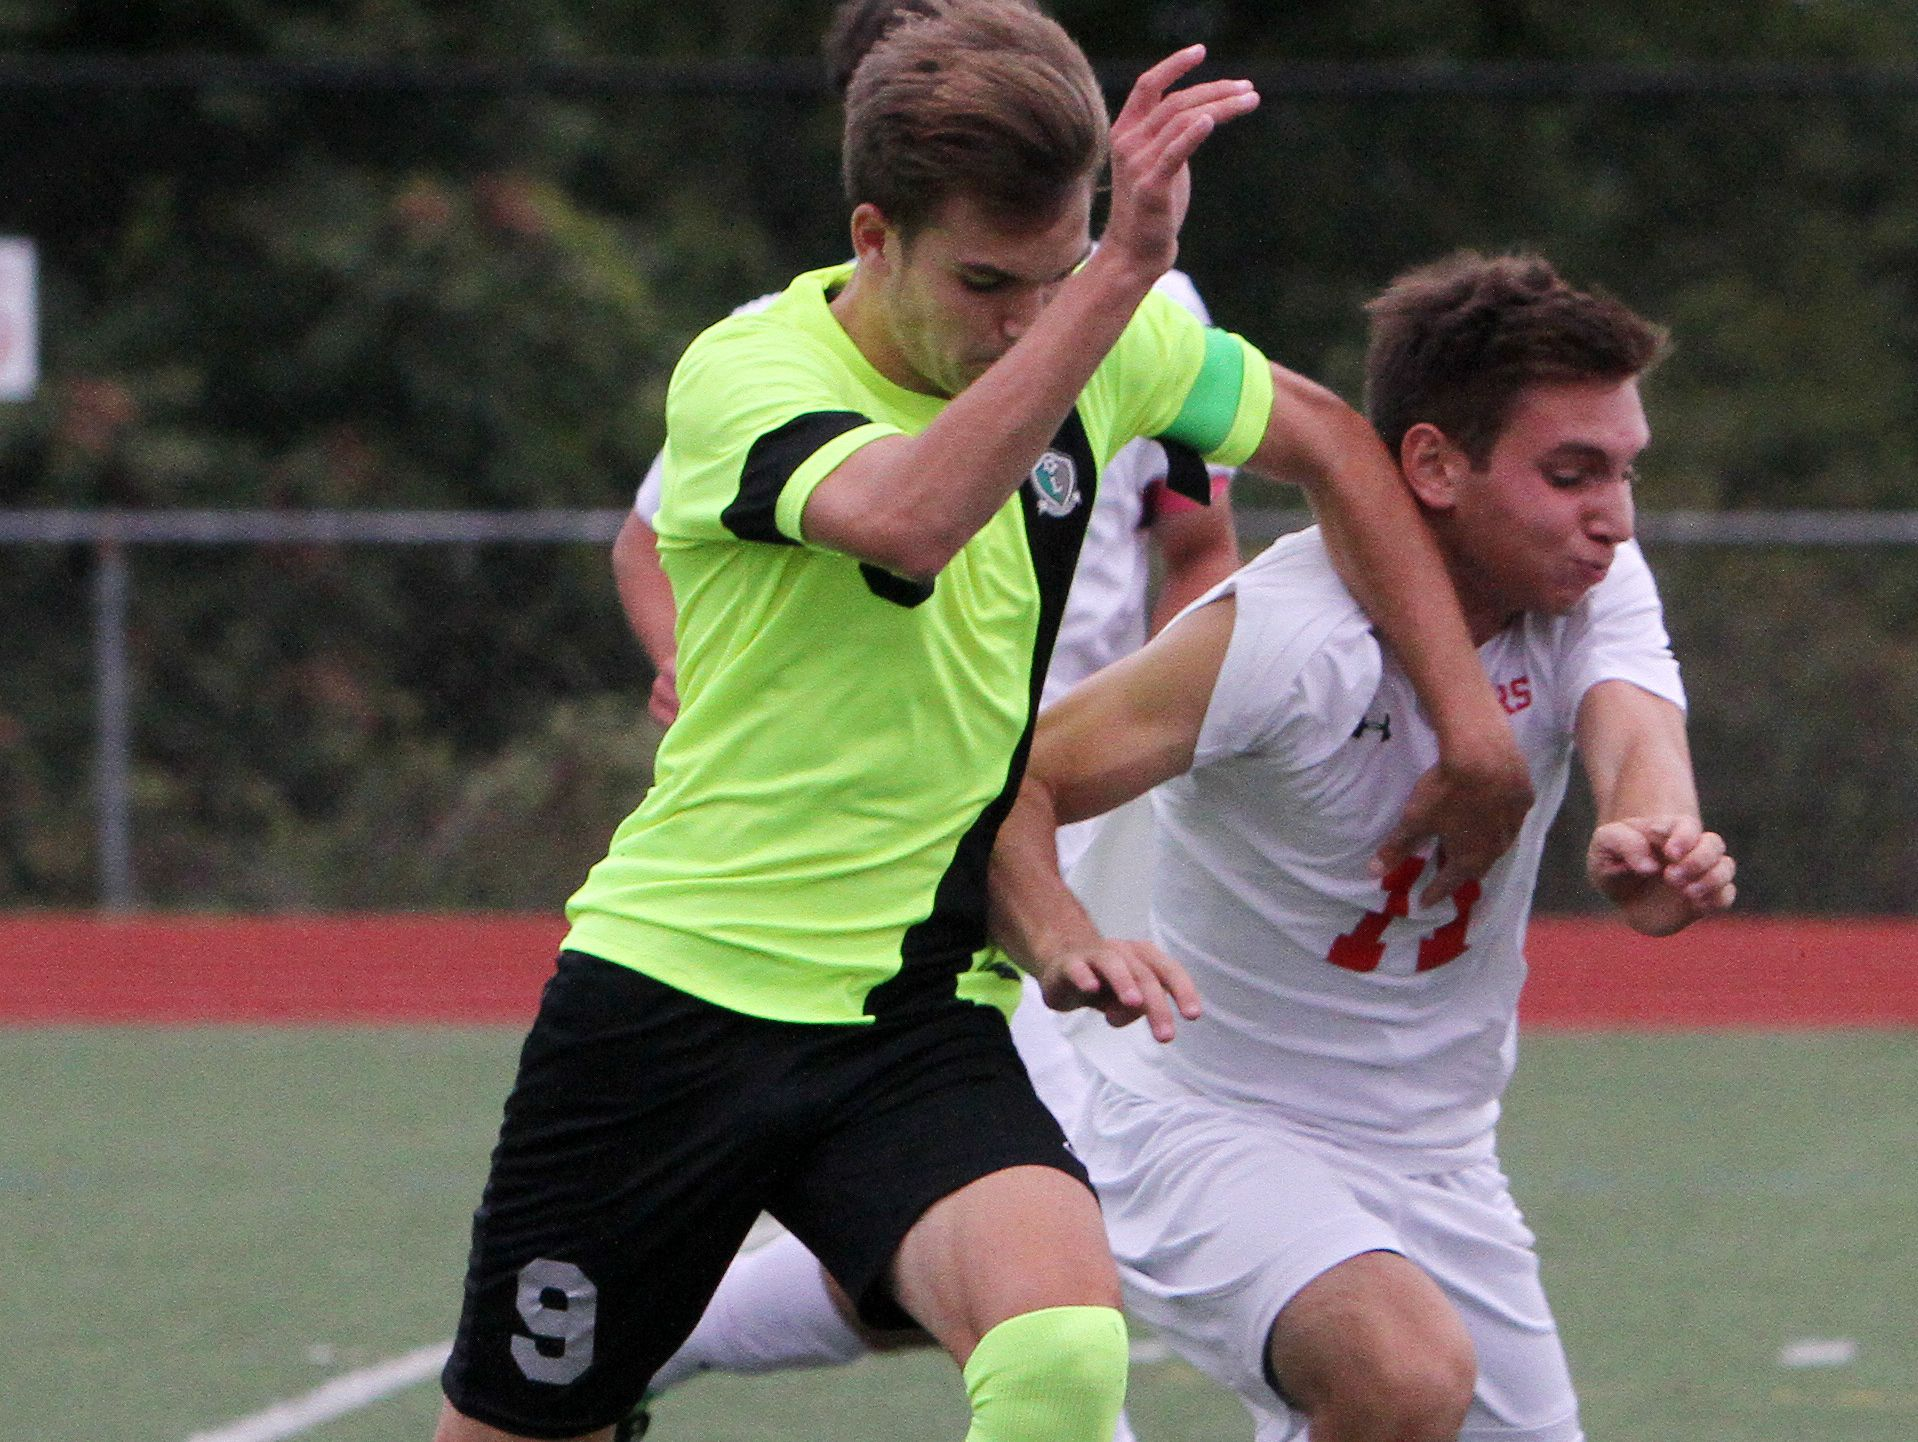 From left, Lakeland's Matias Prando (9) and Somers' John Riina (11) battle for ball control during soccer action at Somers High School Sept. 28, 2016. Lakeland won the game 2-1 in overtime.